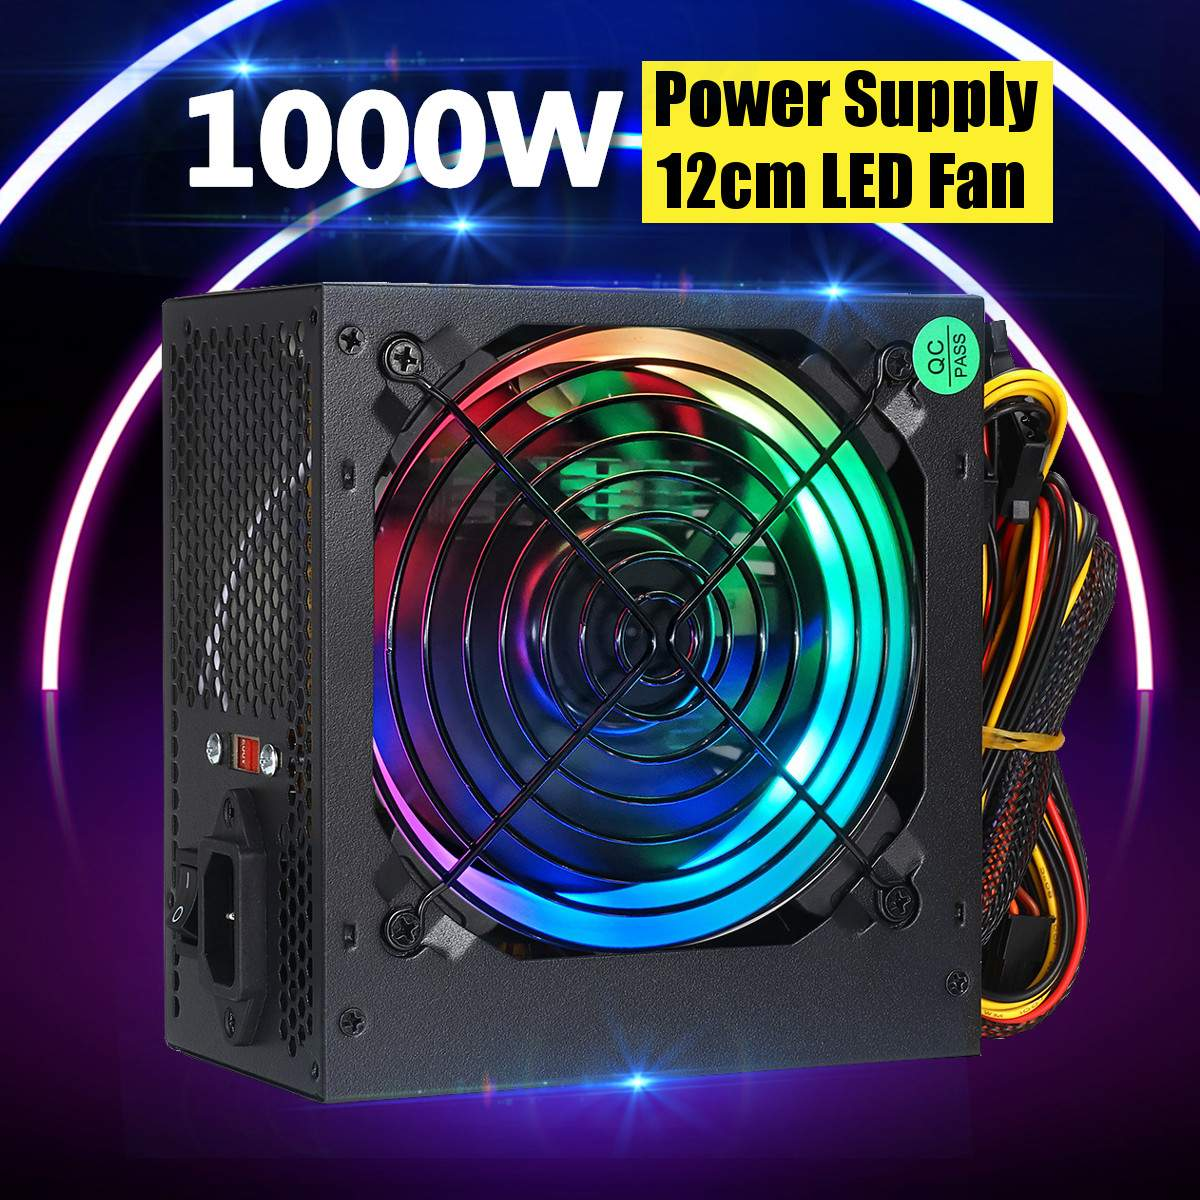 Max 1000W Power Supply PSU Silent 12cm LED Rgb Fan ATX 24pin 12V PC Computer SATA Gaming PC Power Supply For Intel AMD Computer